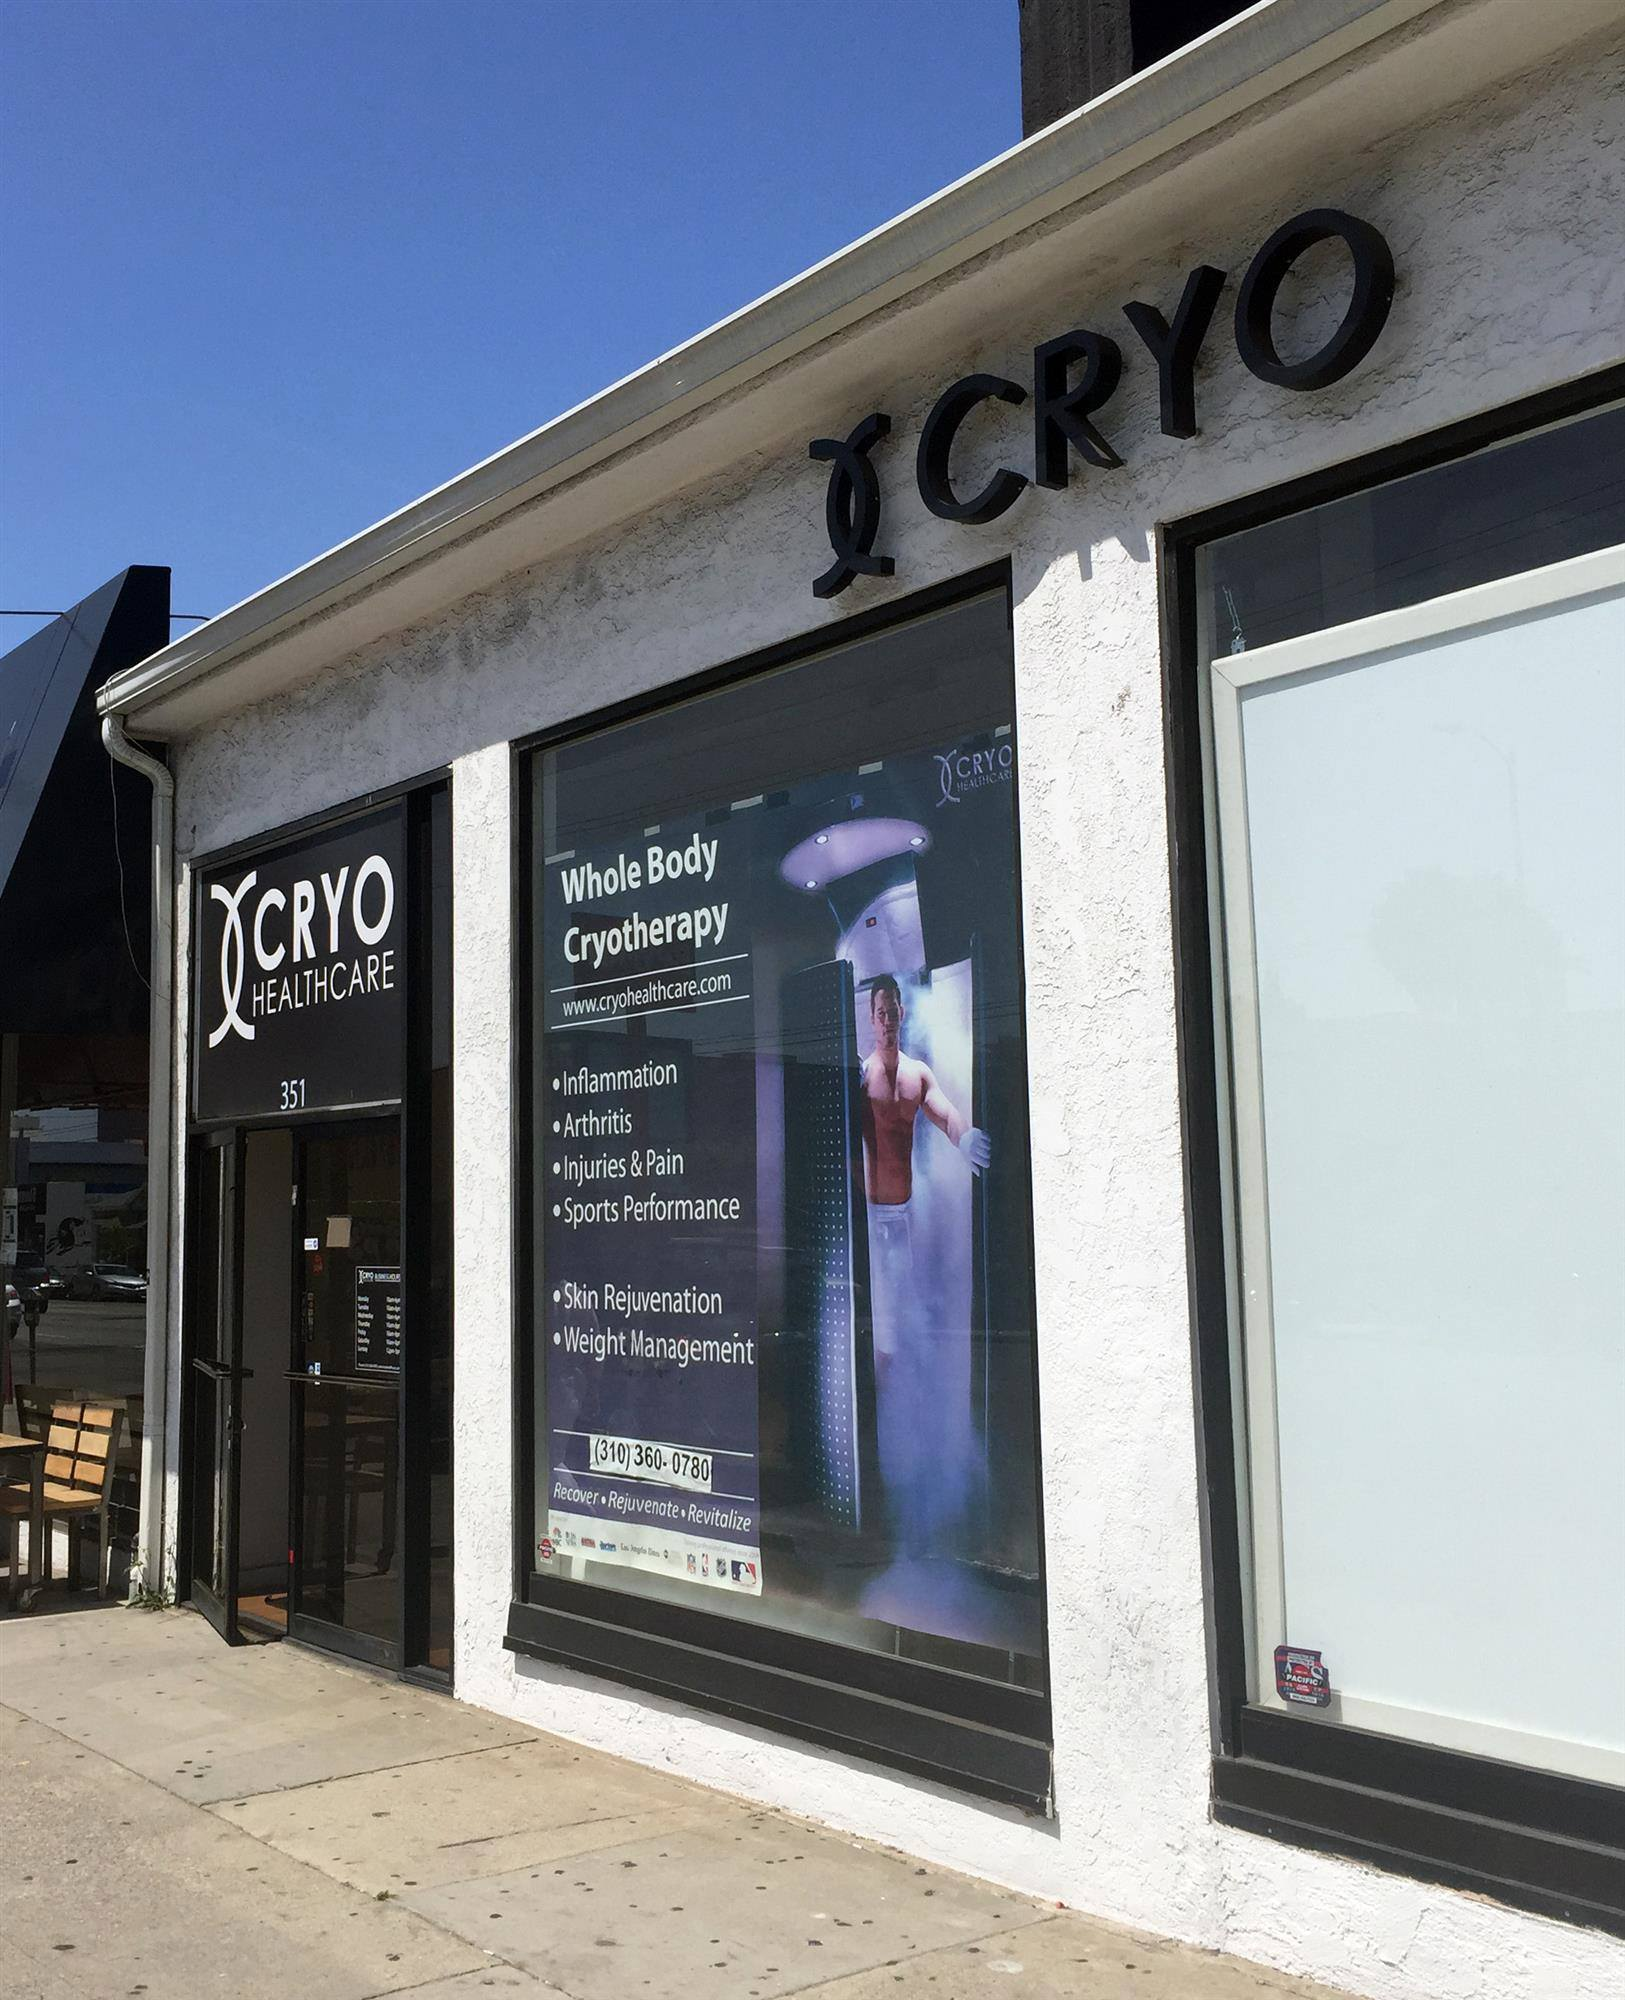 Cryohealthcare in West Hollywood